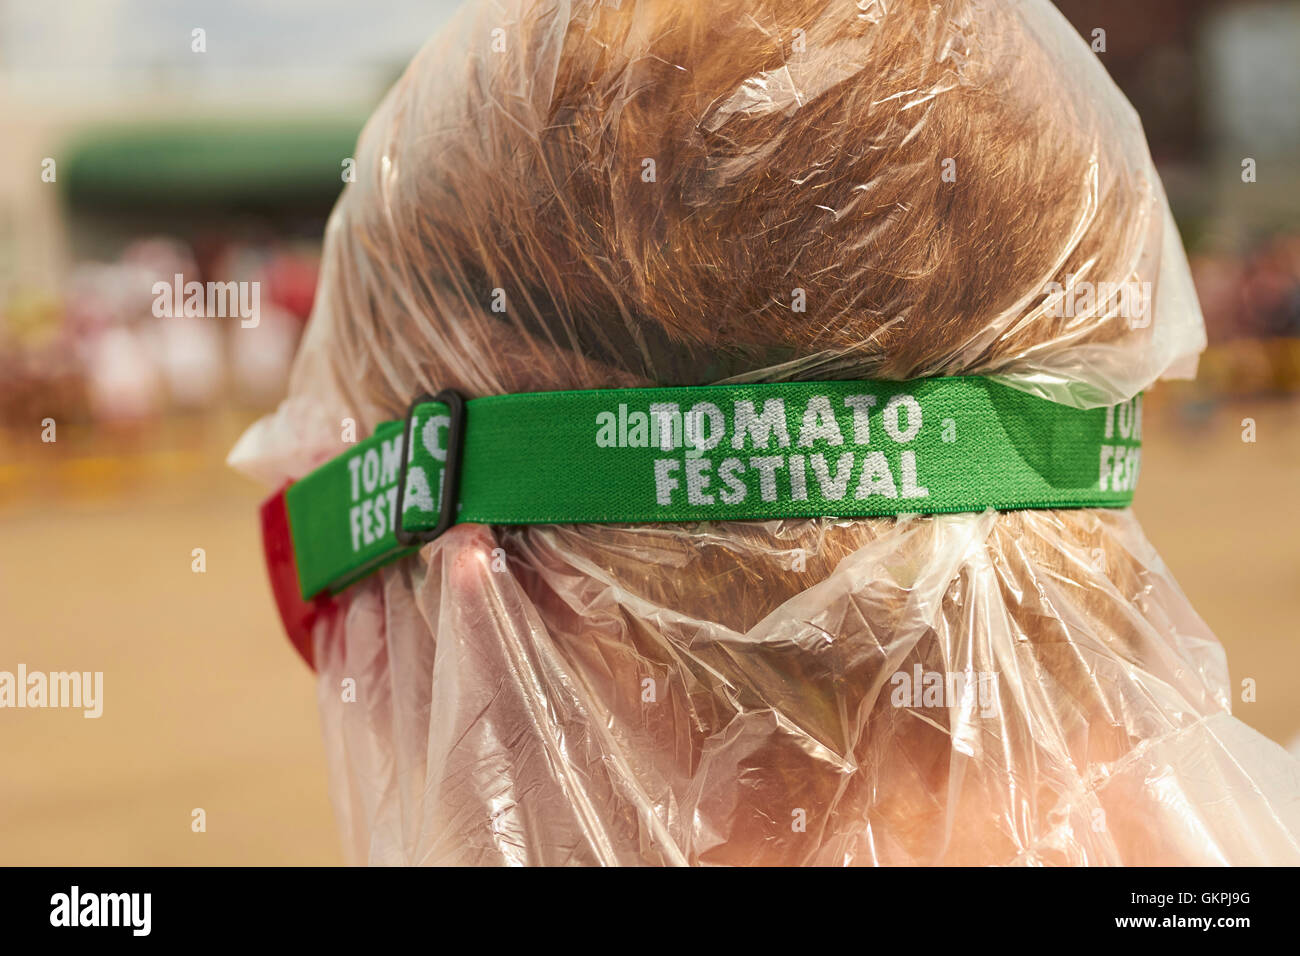 Tomato fighter, Pittston Tomato Festival, Tomato Fights, Pennsylvania, USA - Stock Image